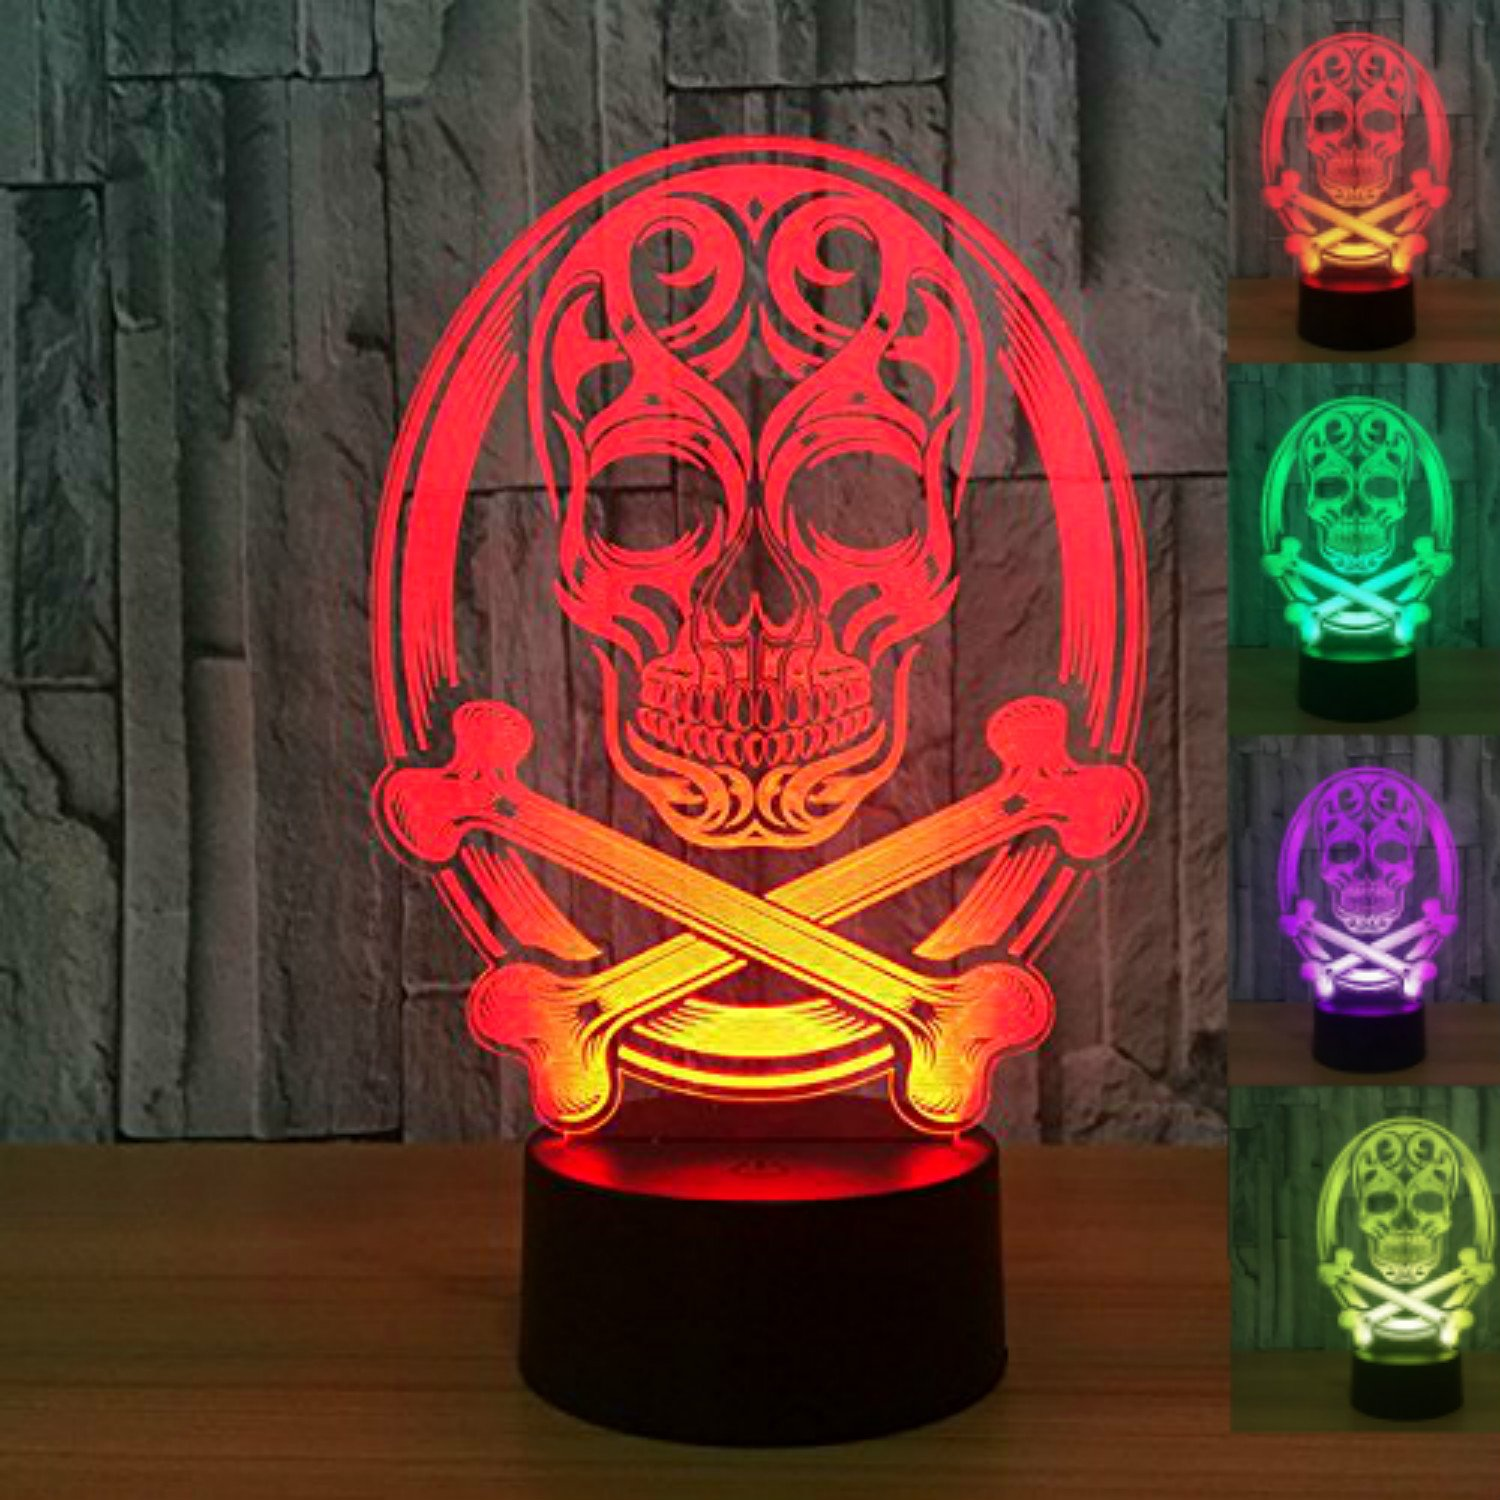 3D Skull Night Light USB Touch Switch Decor Table Desk Optical Illusion Lamps 7 Color Changing Lights LED Table Lamp Xmas Home Love Brithday Children Kids Decor Toy Gift